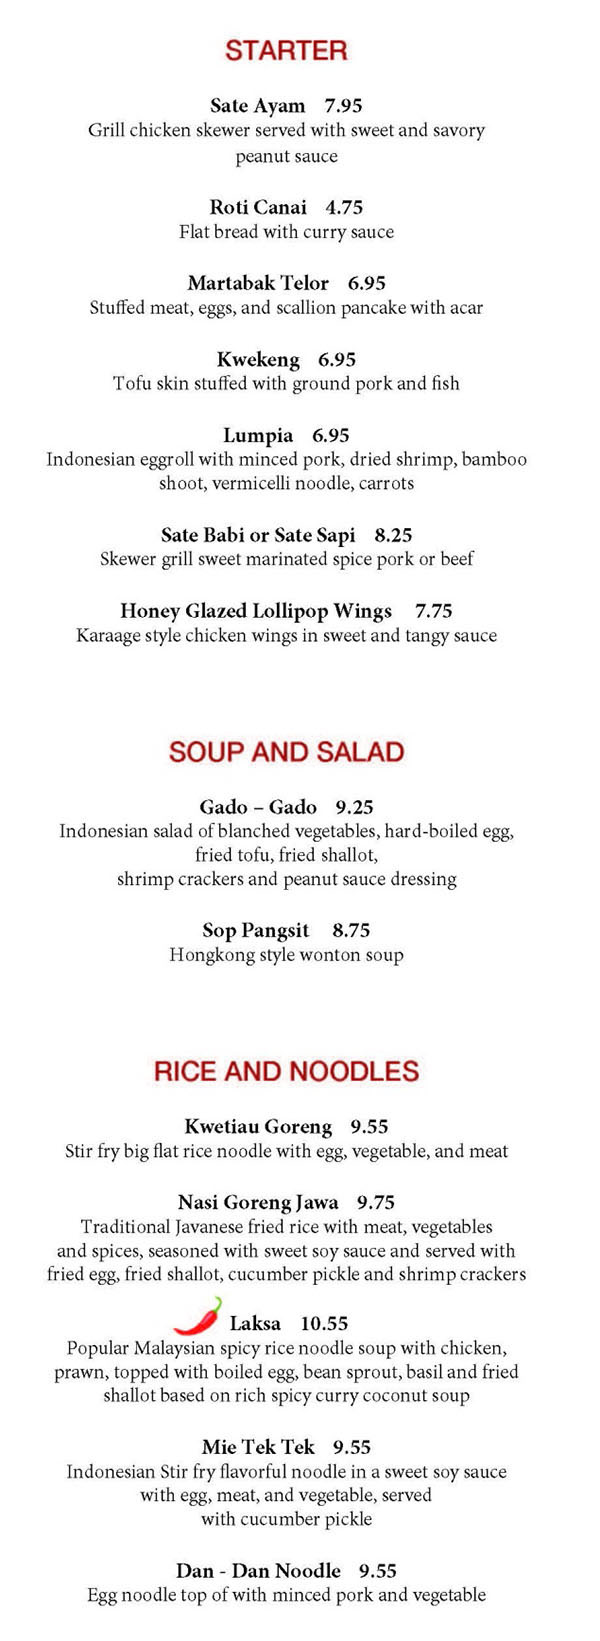 MakanMakan menu - starter, soup, salad, rice and noodles